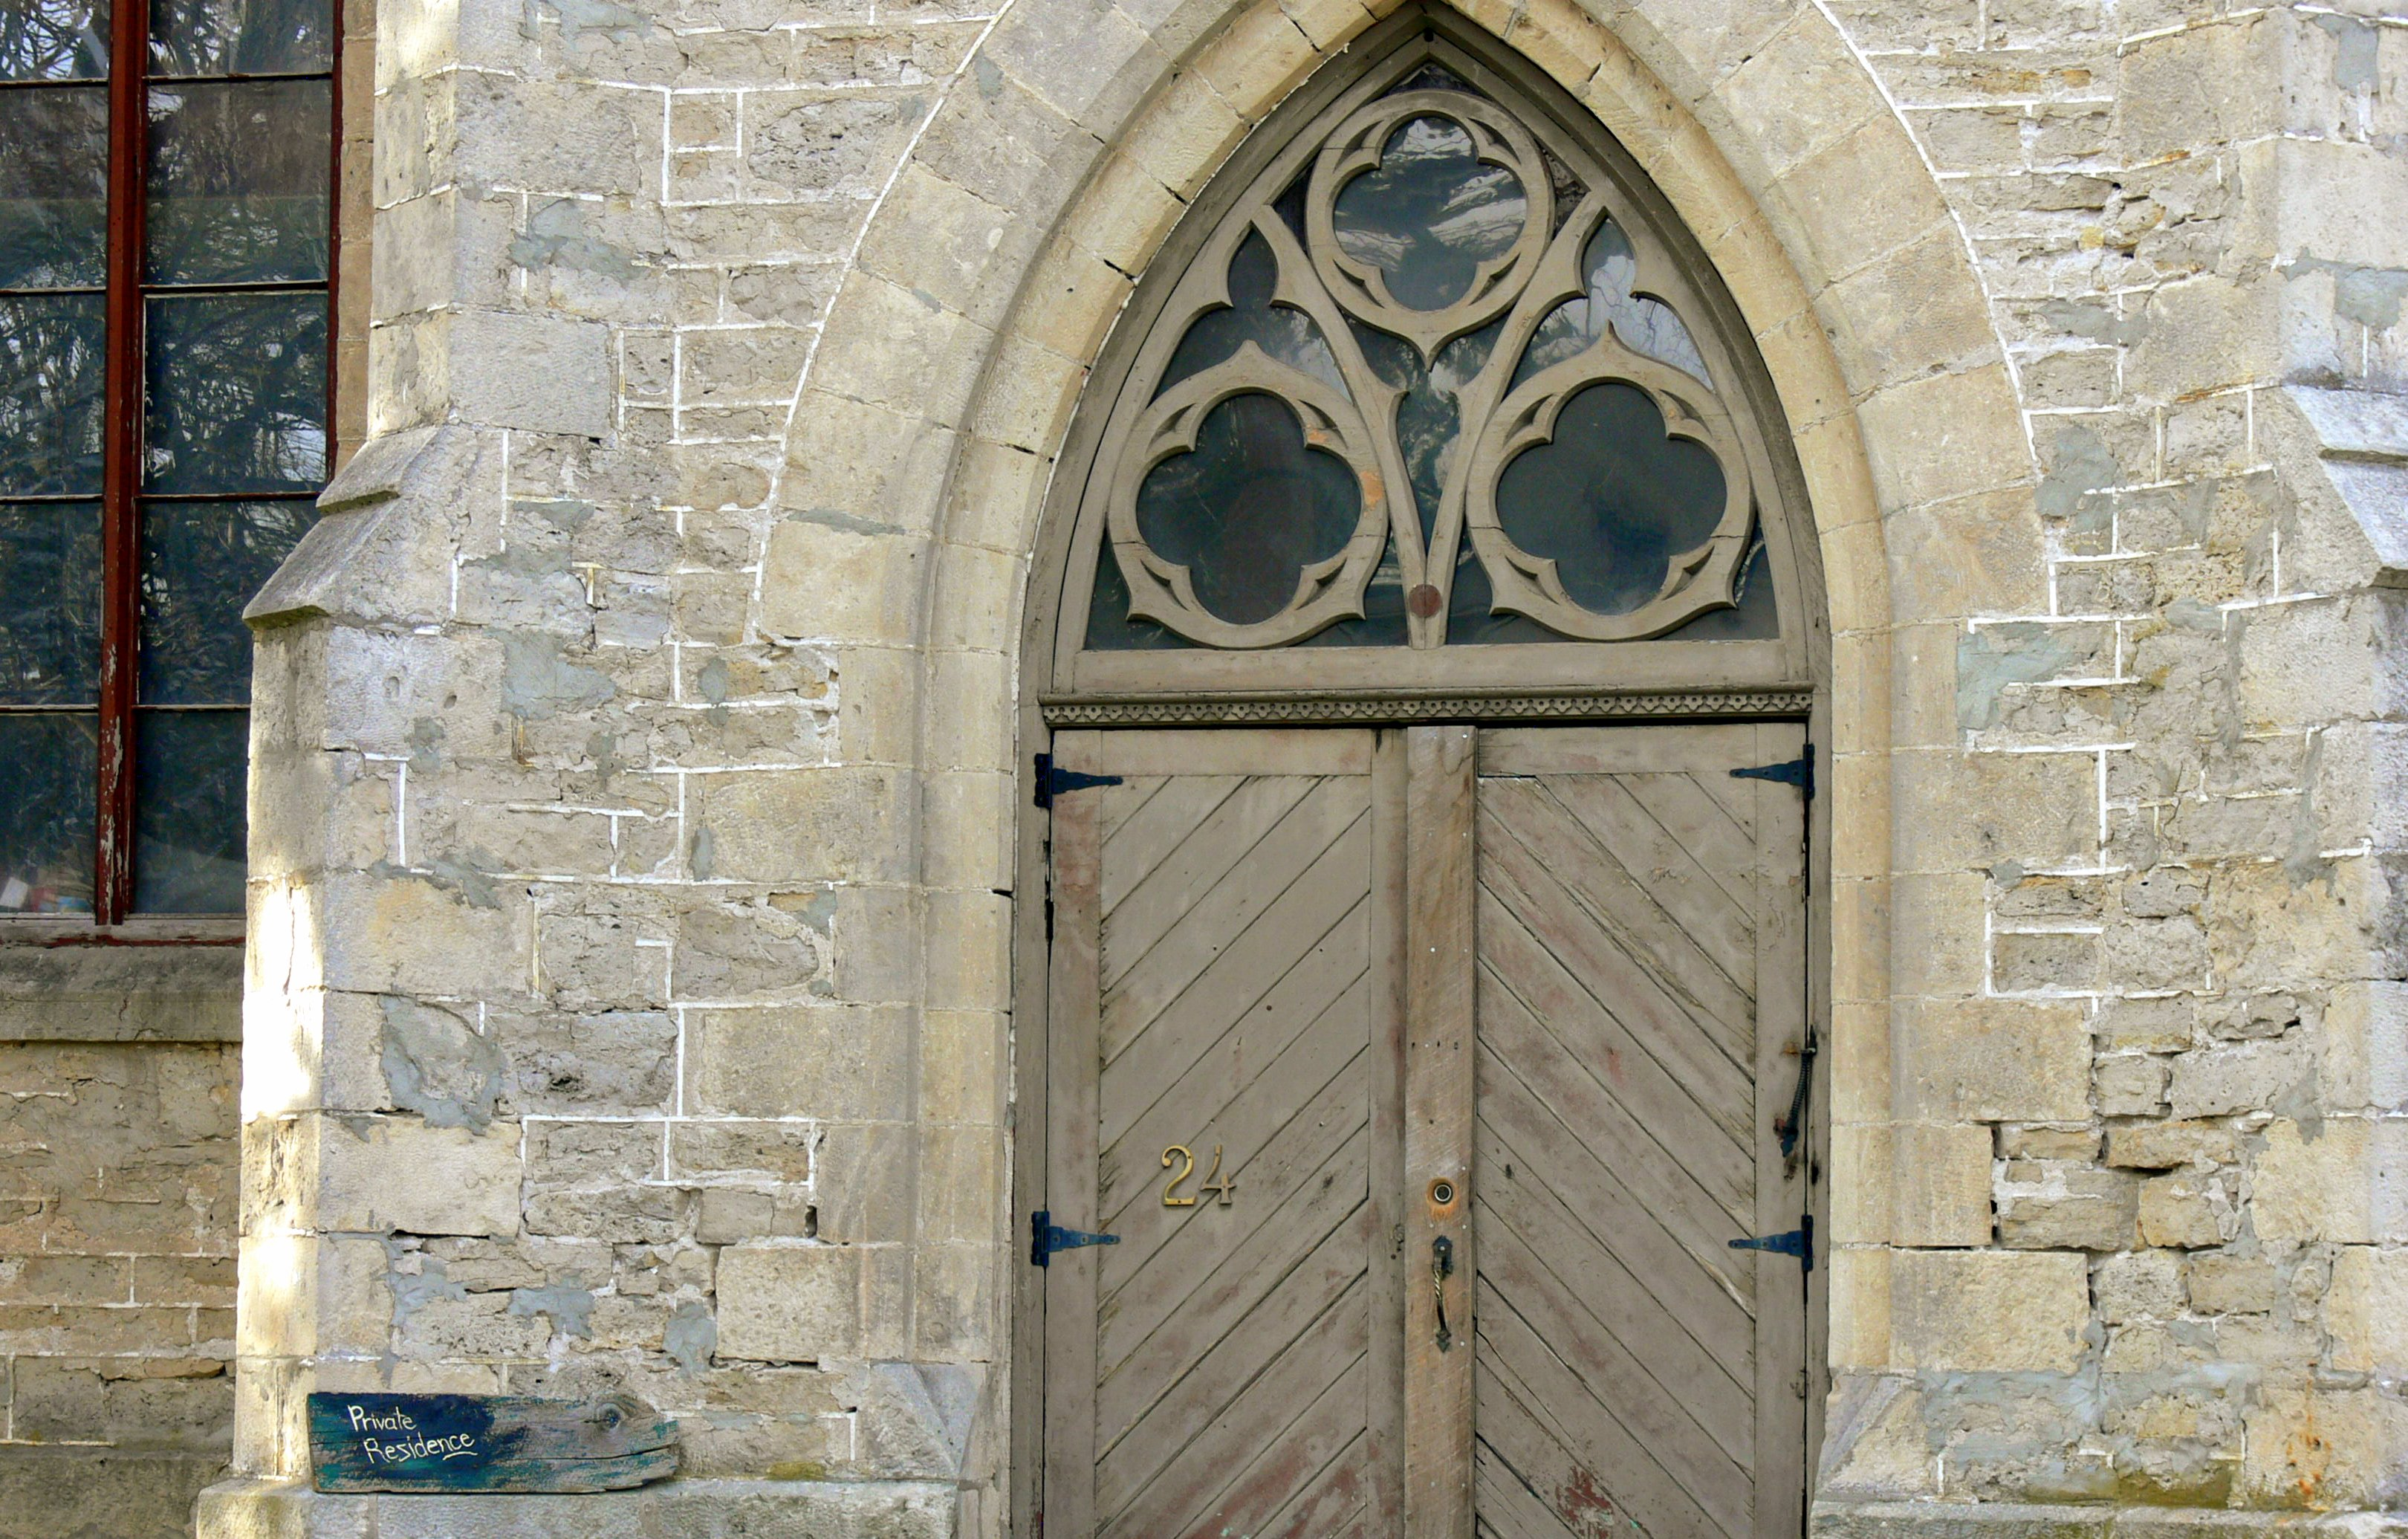 Unique and interesting doors I shot in Elora...